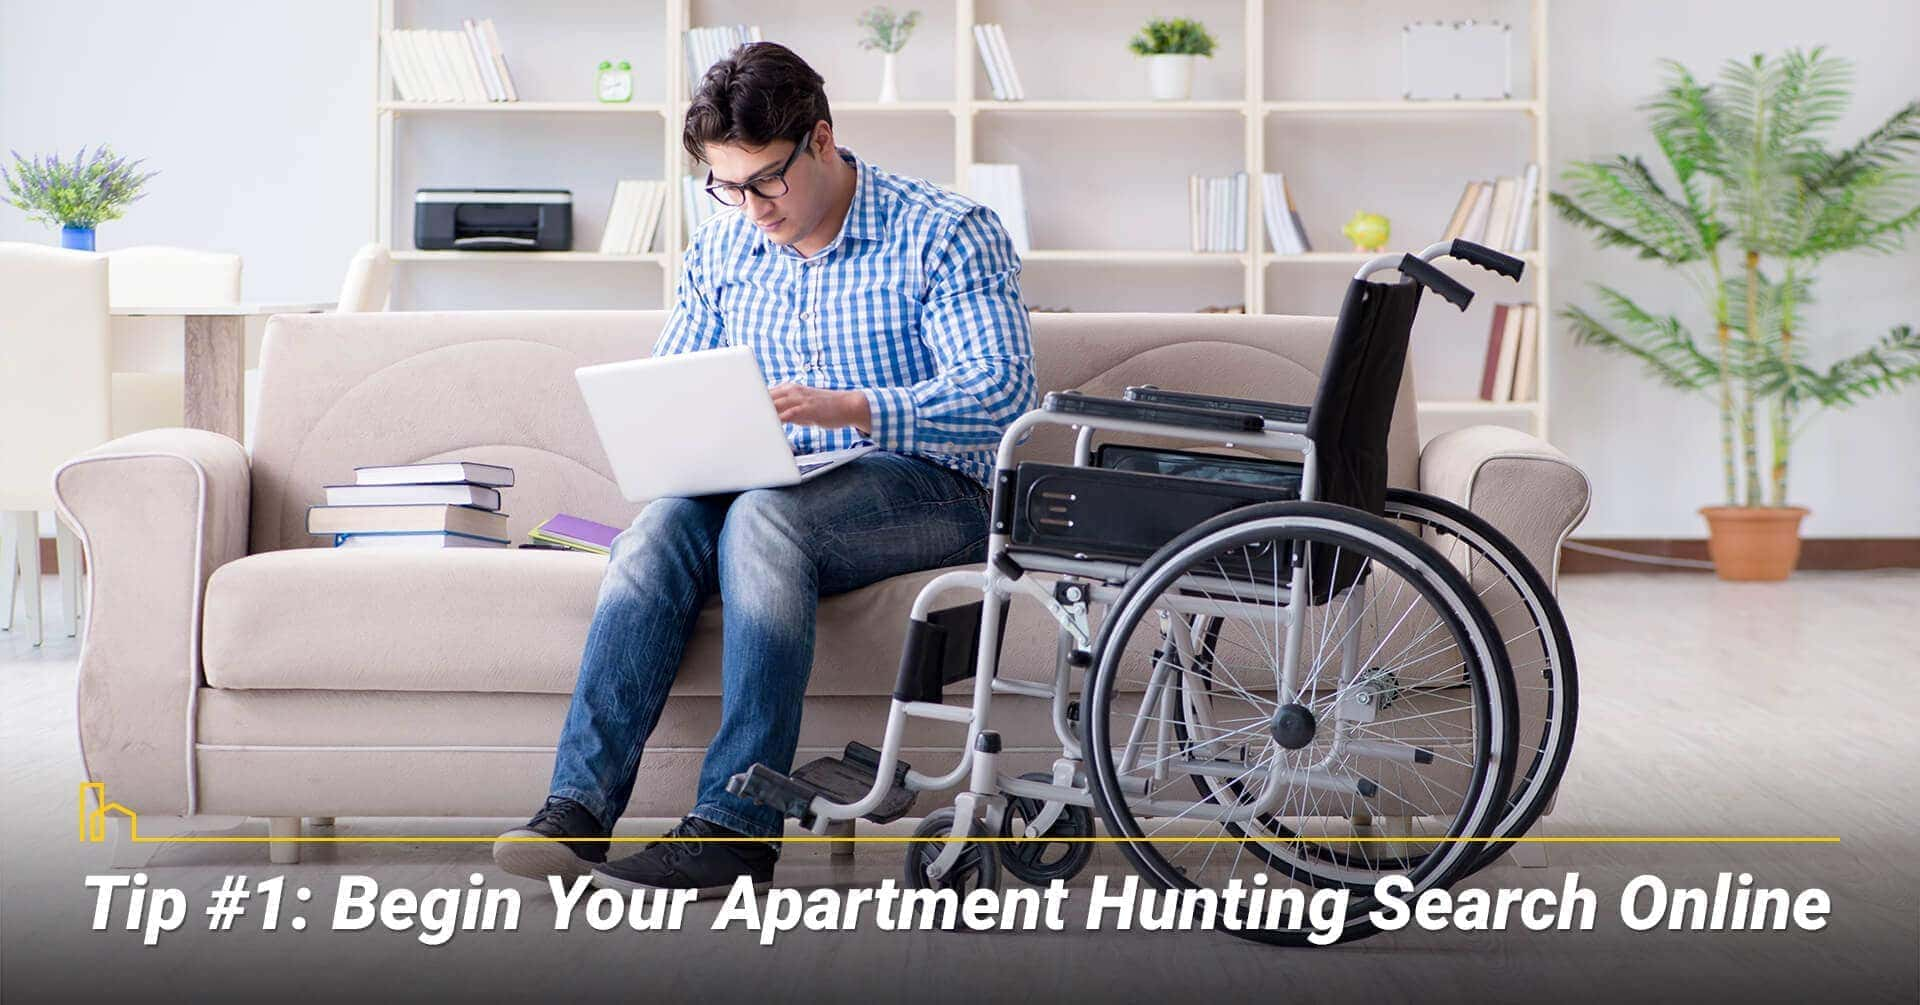 Tip #1: Begin Your Apartment Hunting Search Online, start your search online